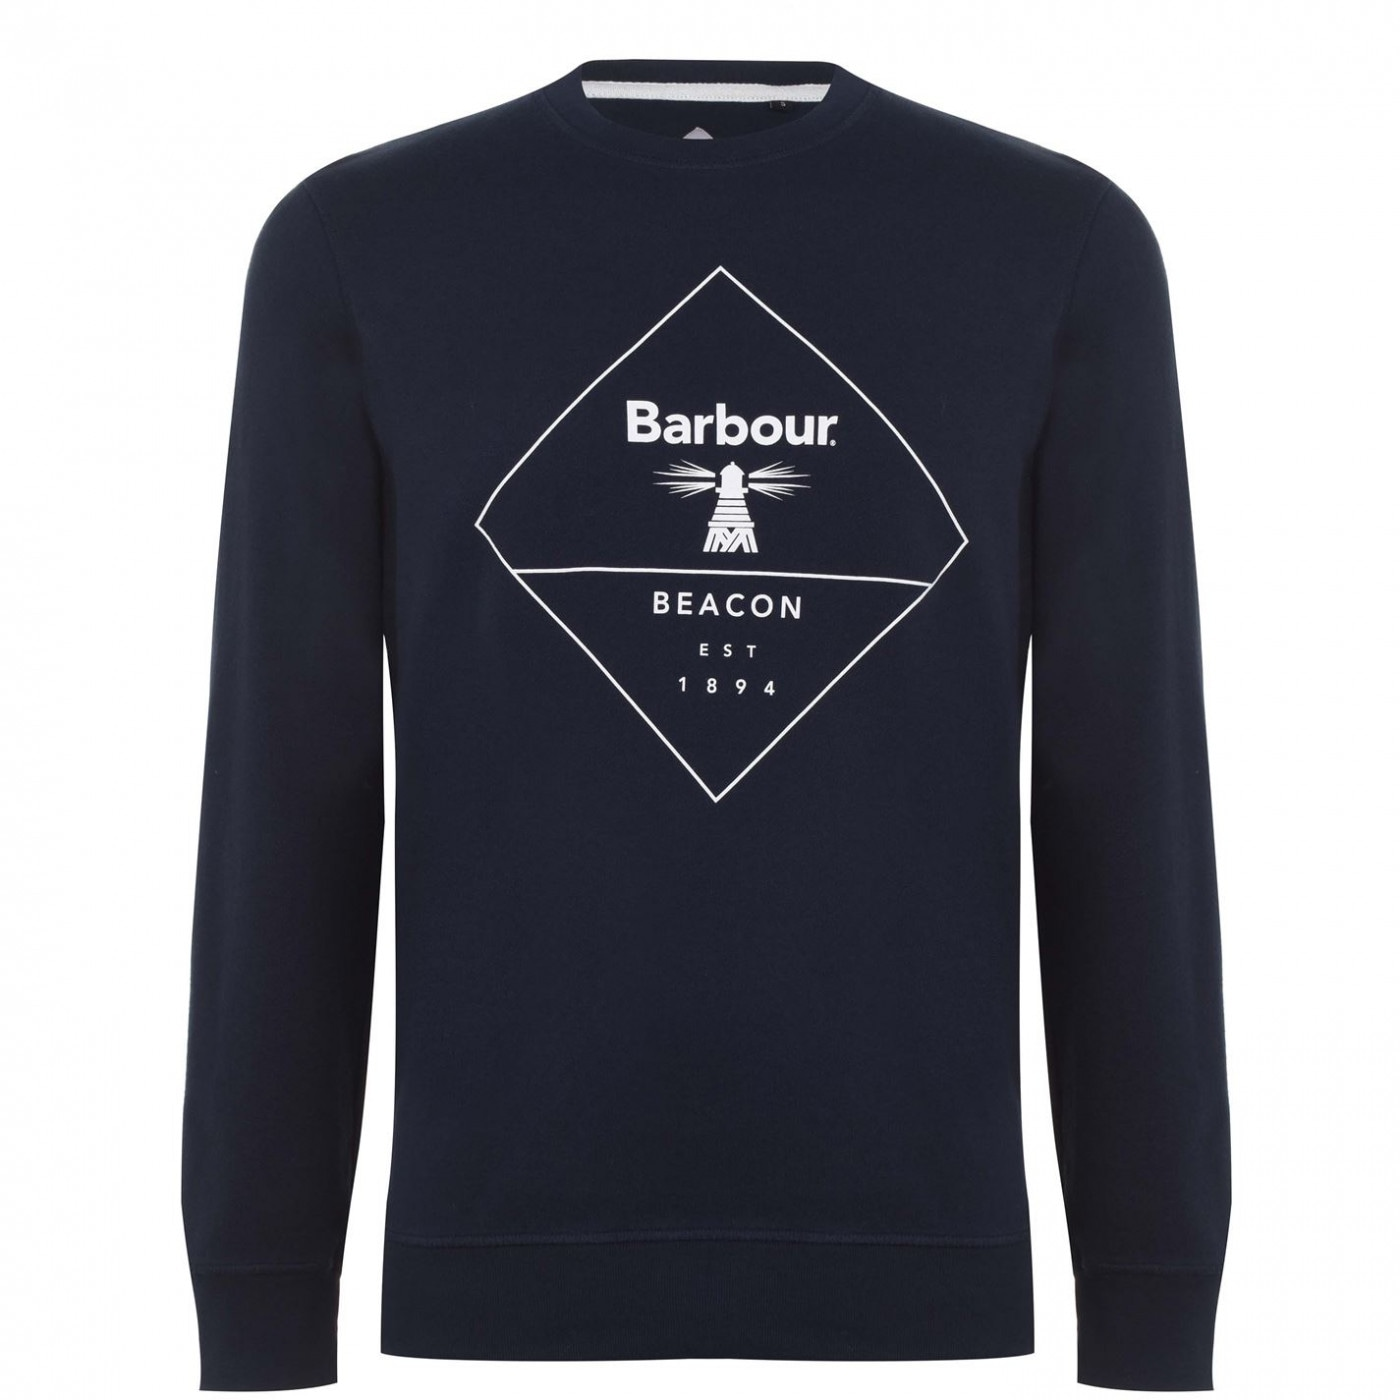 Barbour Beacon B.Beacon Outline Sweat